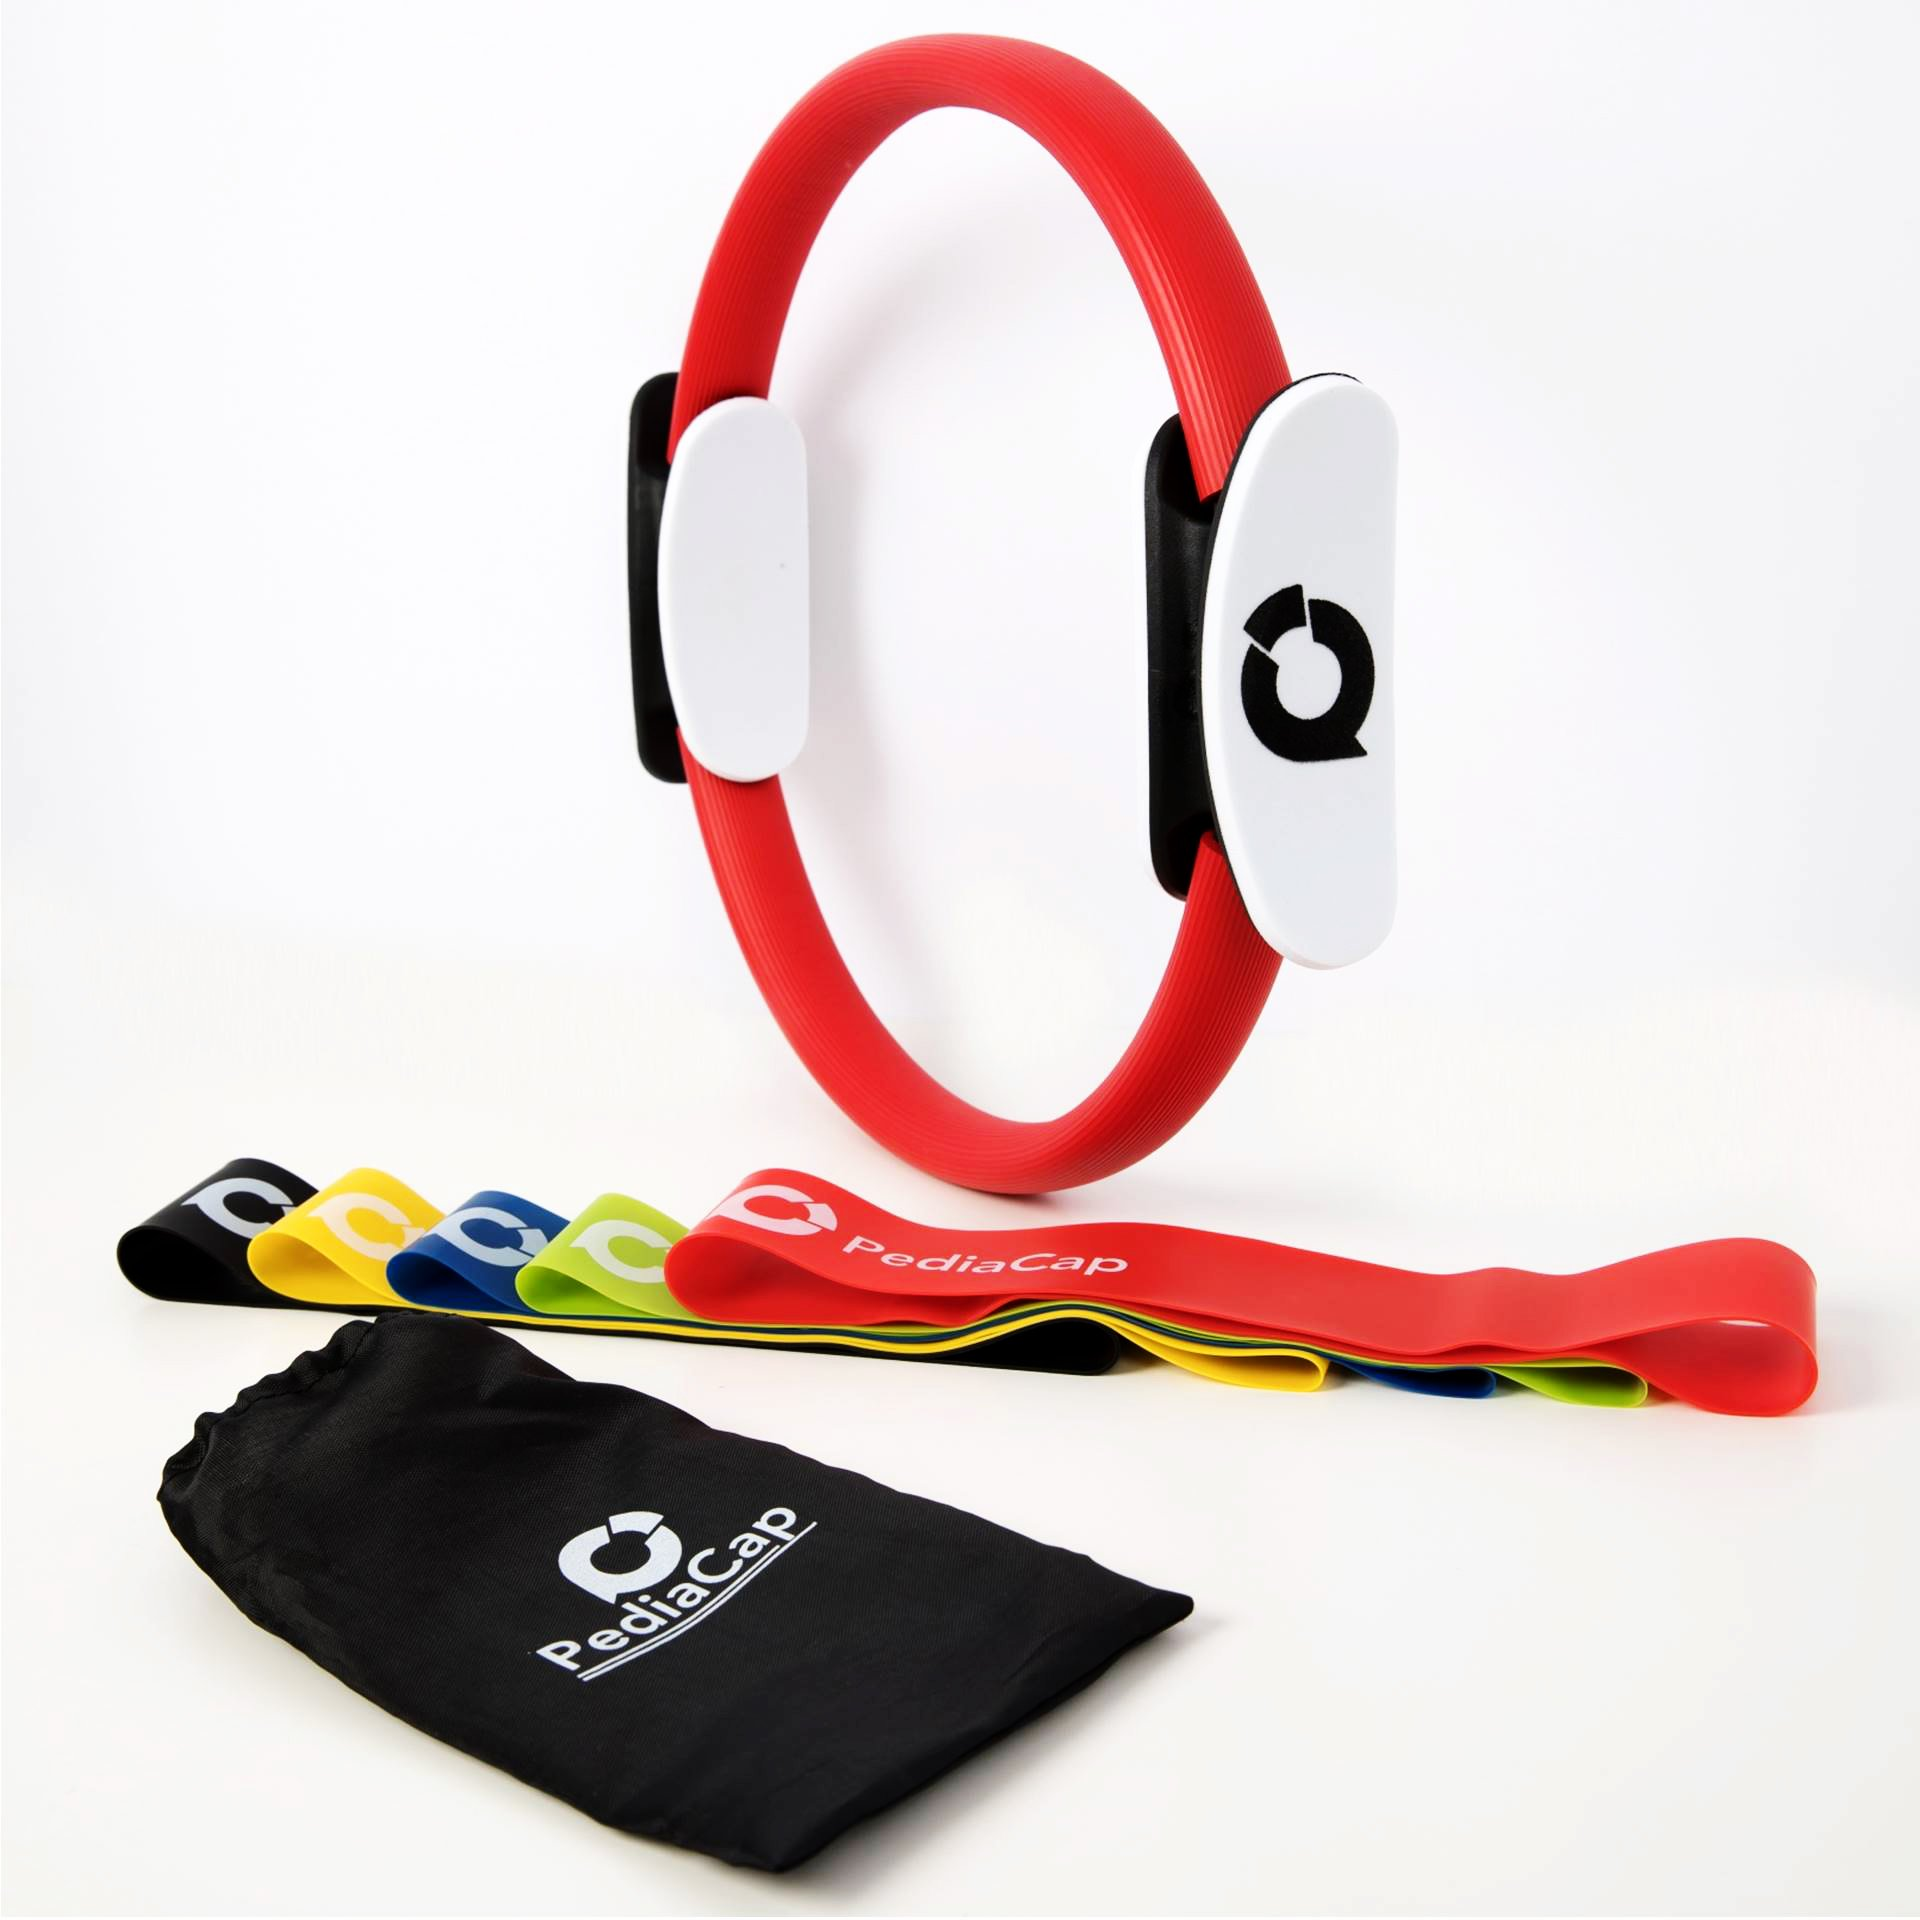 Pediacap Pilates Ring Magic Yoga Fitness Circle and Resistance Loop Exercise Bands with Carry Bag